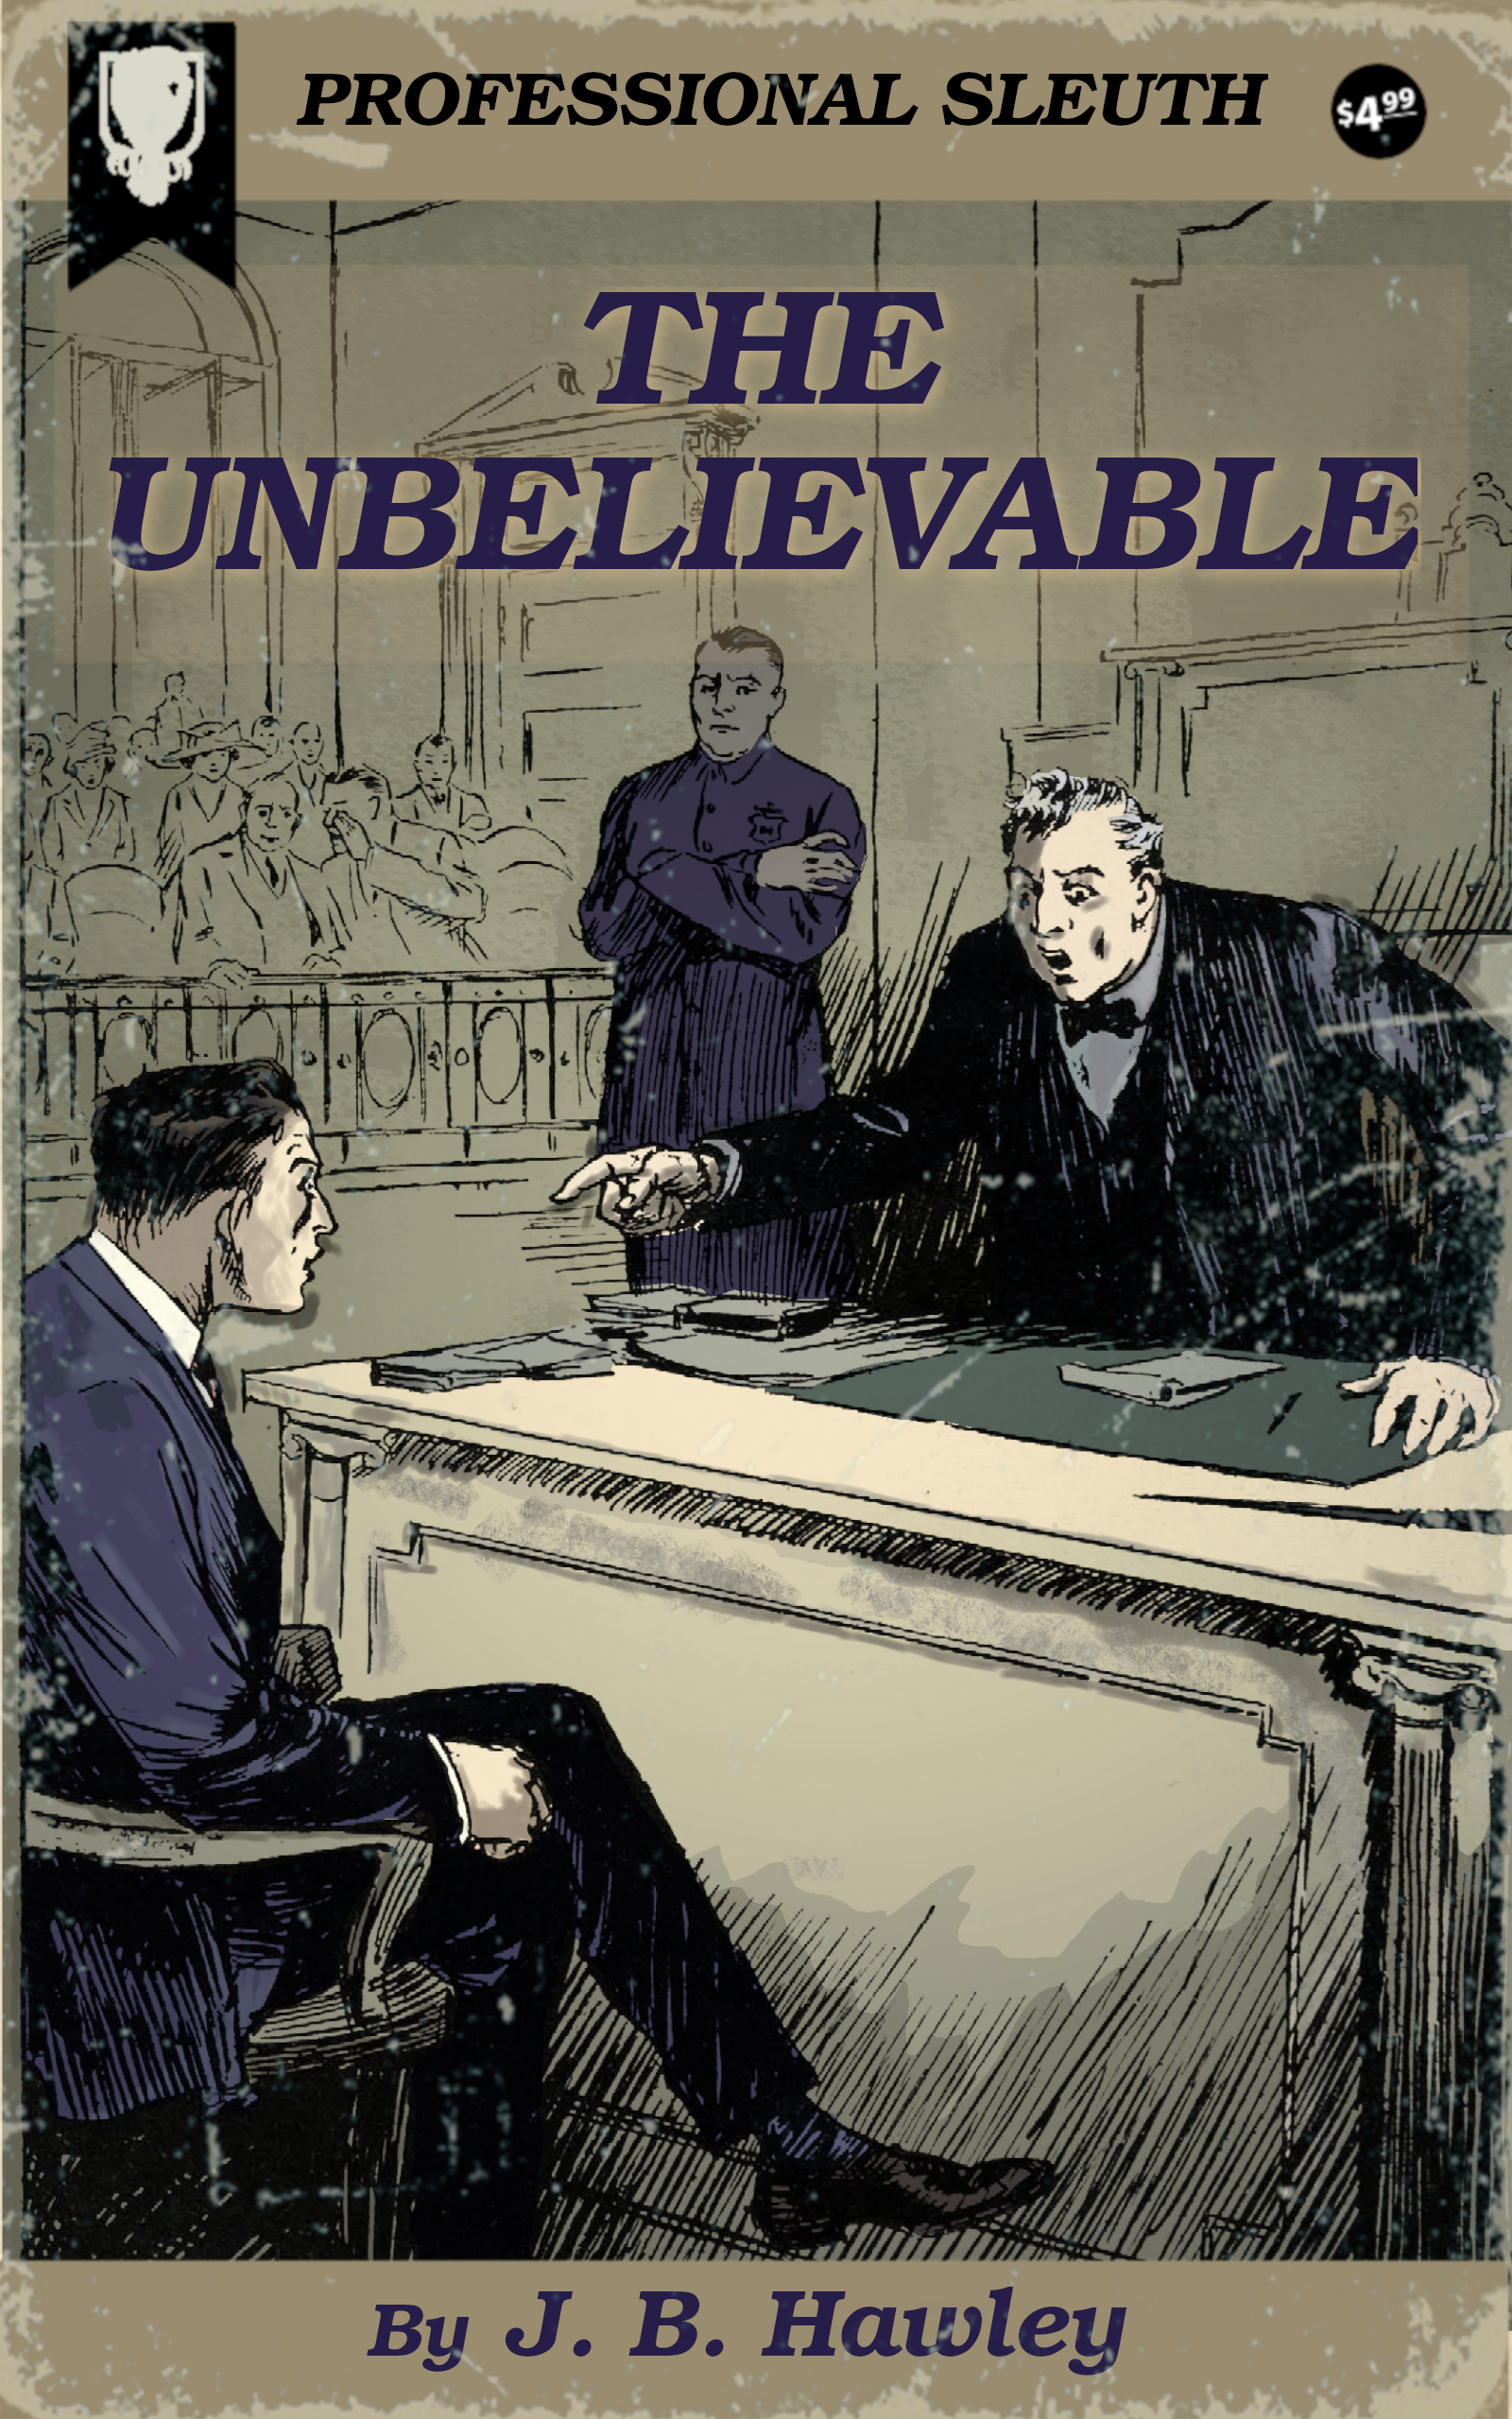 The Unbelievable by J. B. Hawley